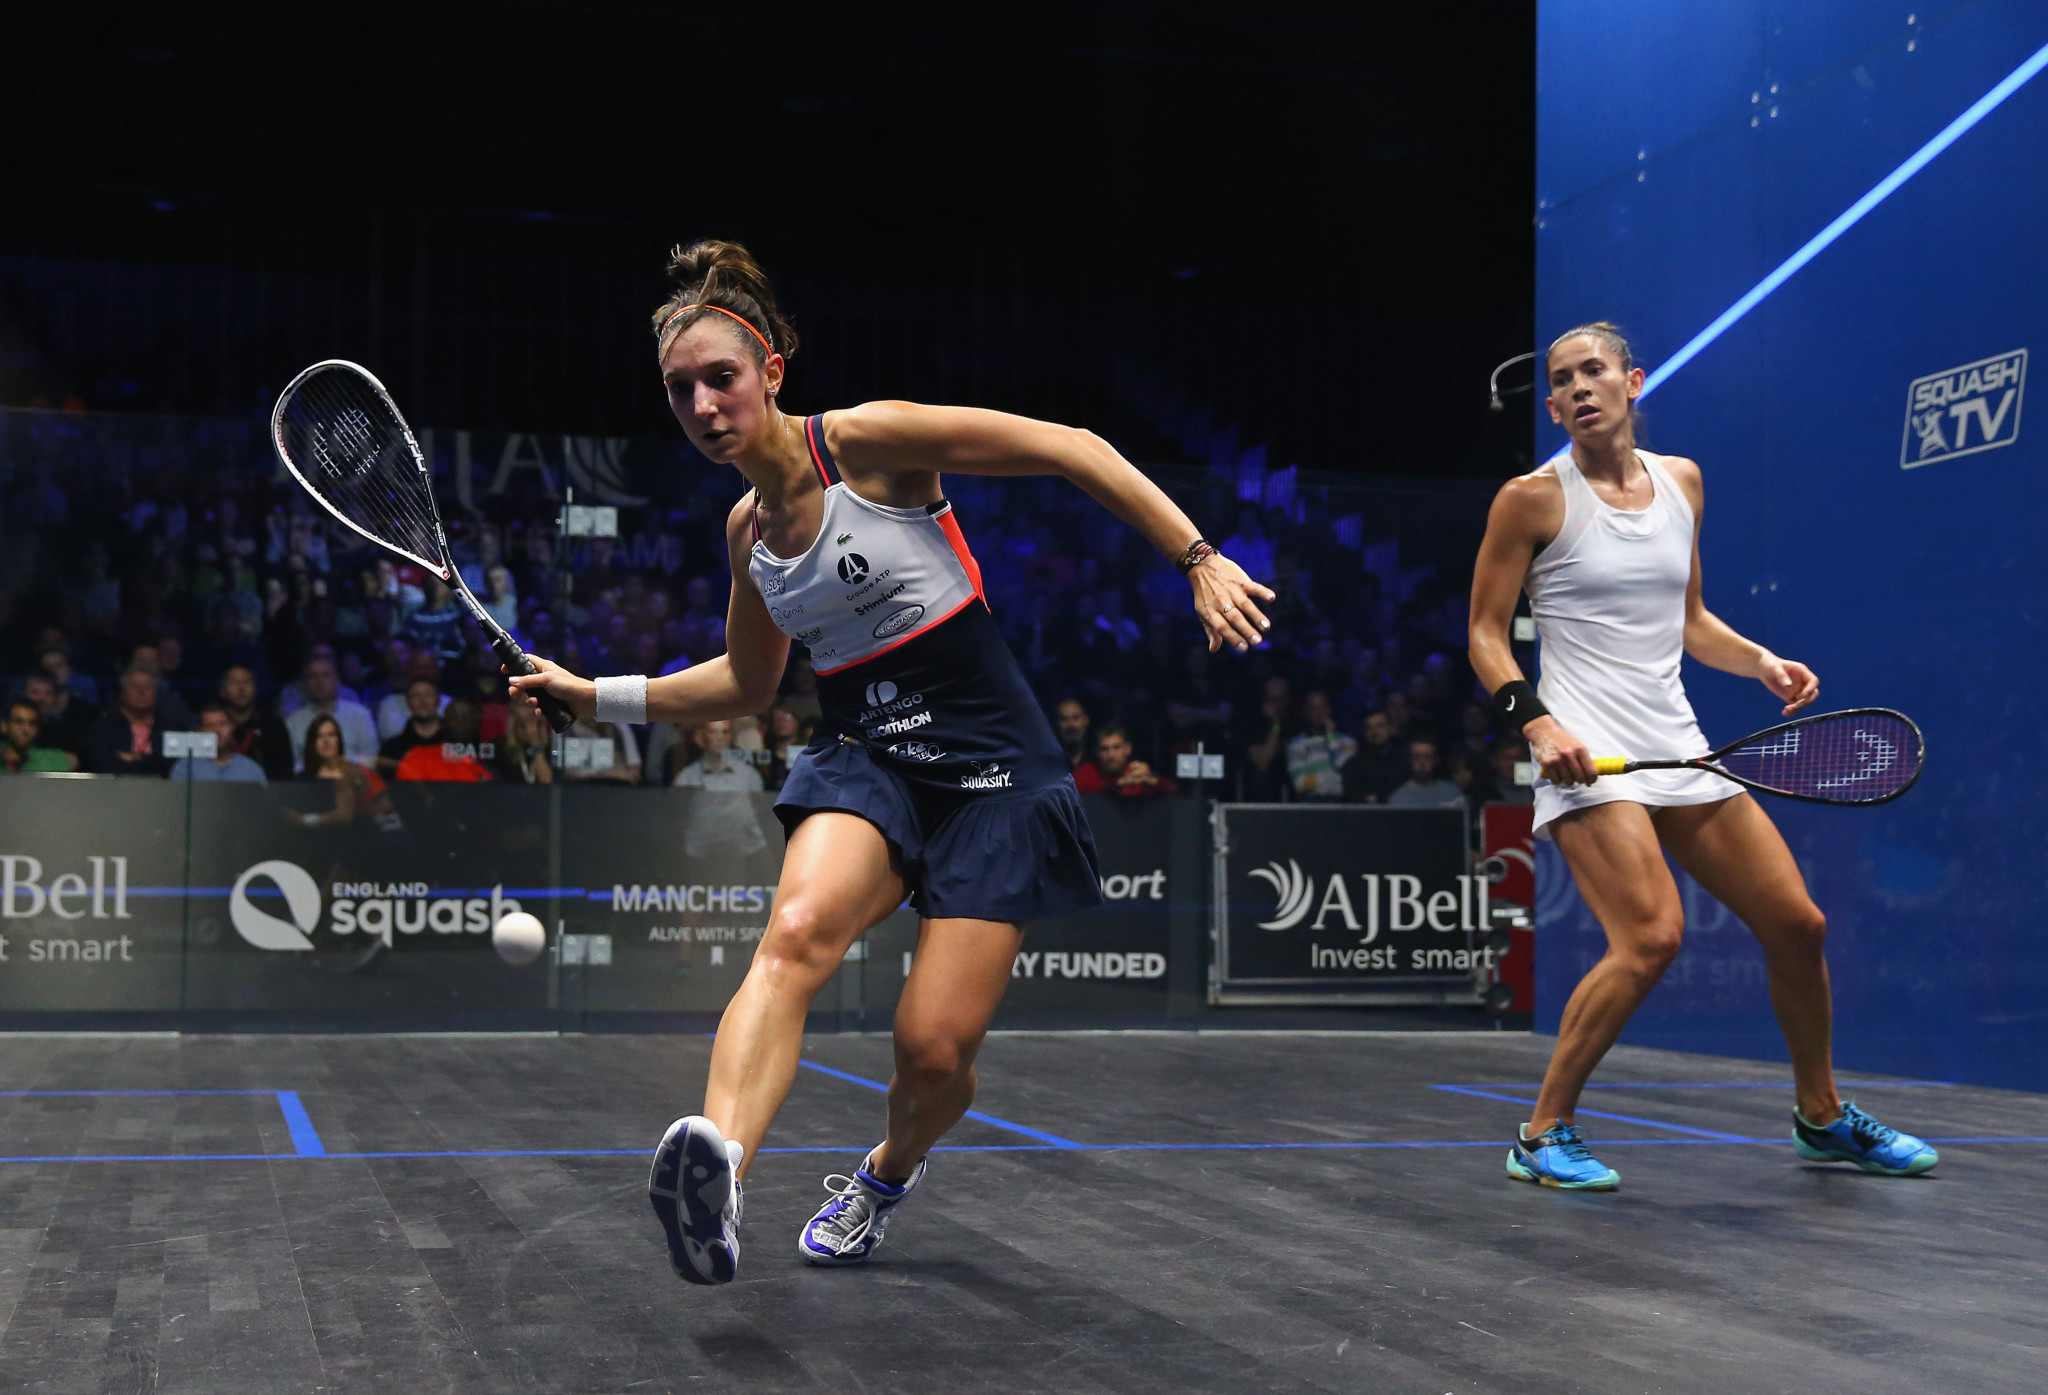 Top seeds advance to last eight at PSA Manchester Open